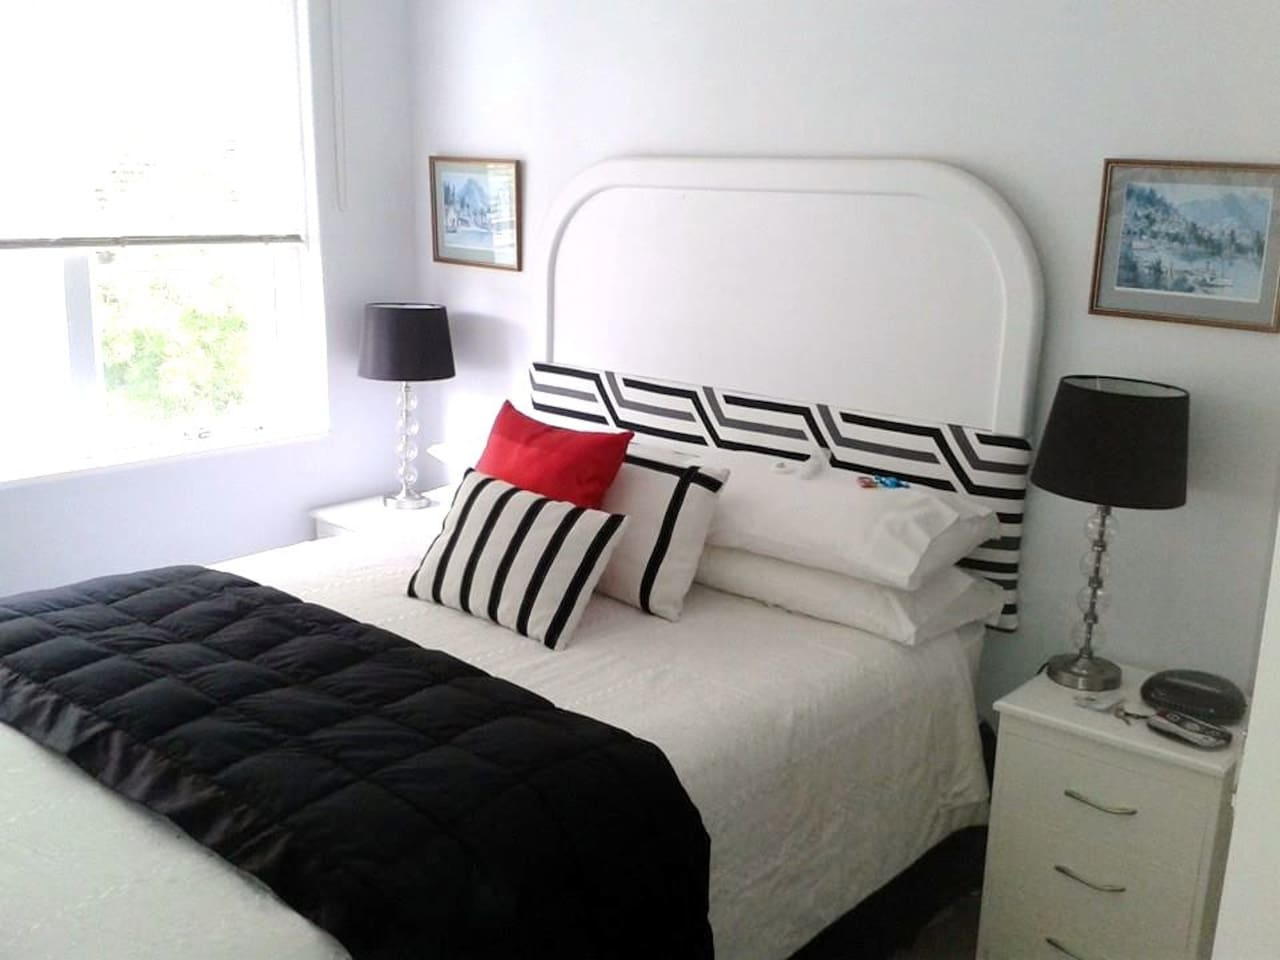 Your bed and room awaits you at Private n' Peaceful Parnell